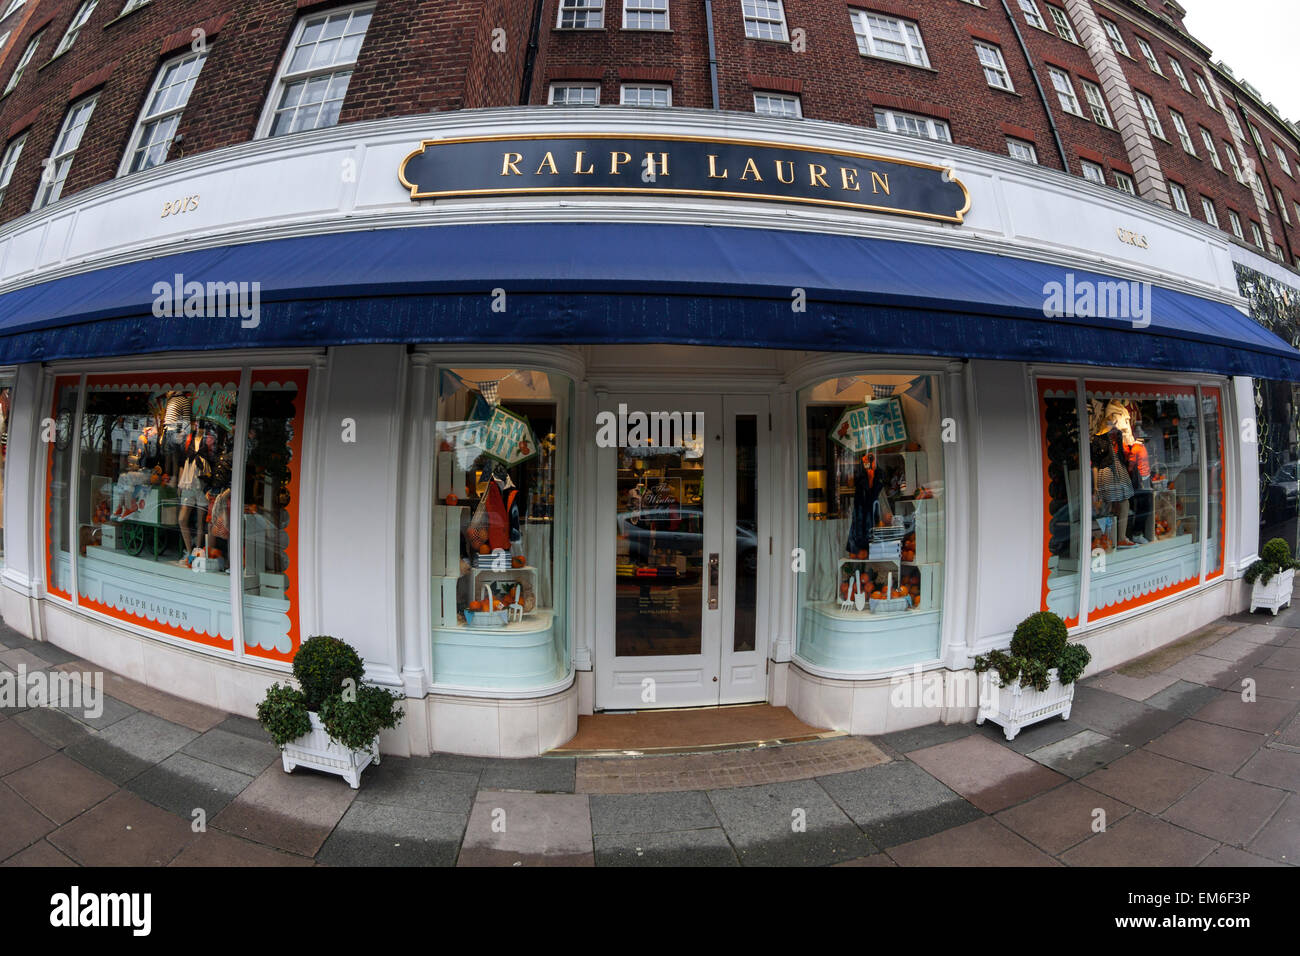 Ralph Lauren Store, Fulham Road, London - Stock Image